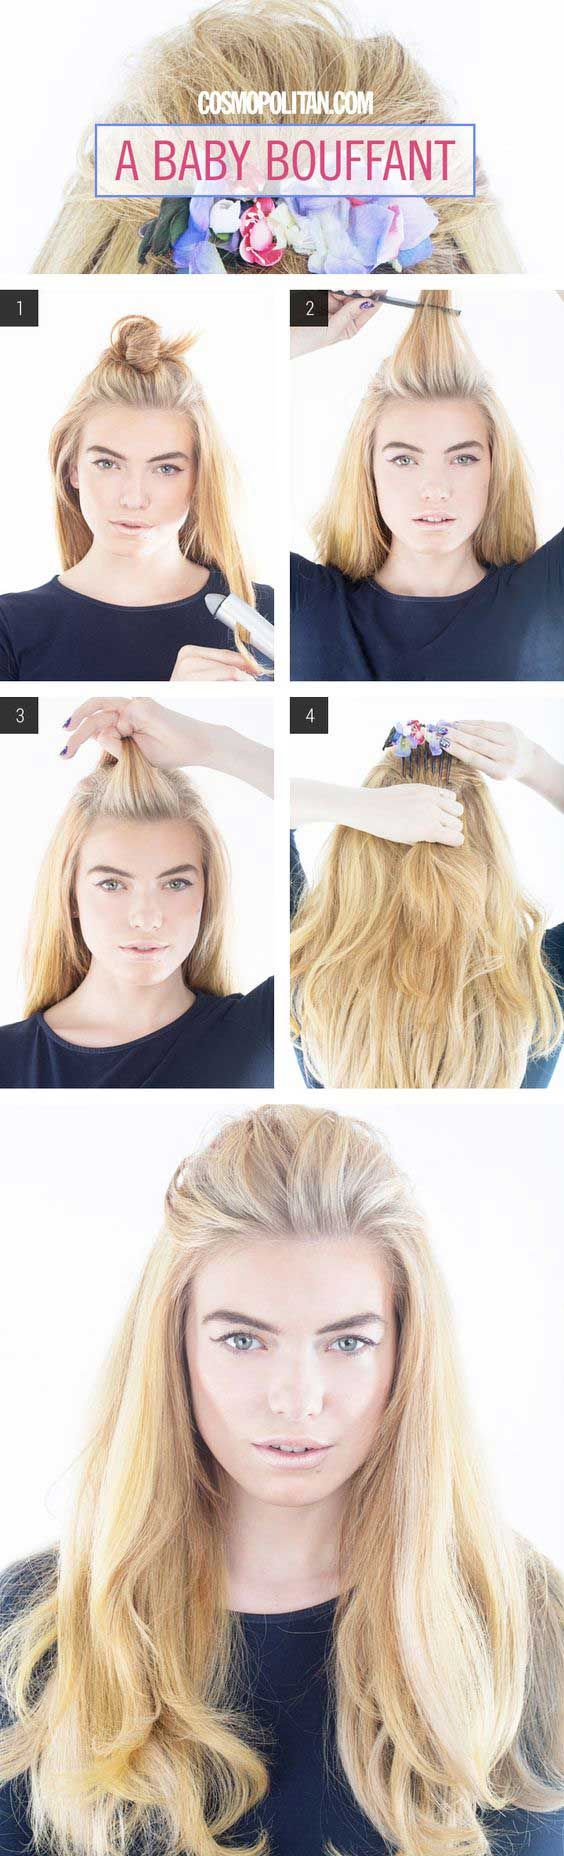 halfuphalfdown hairstyle tutorials perfect for prom half top